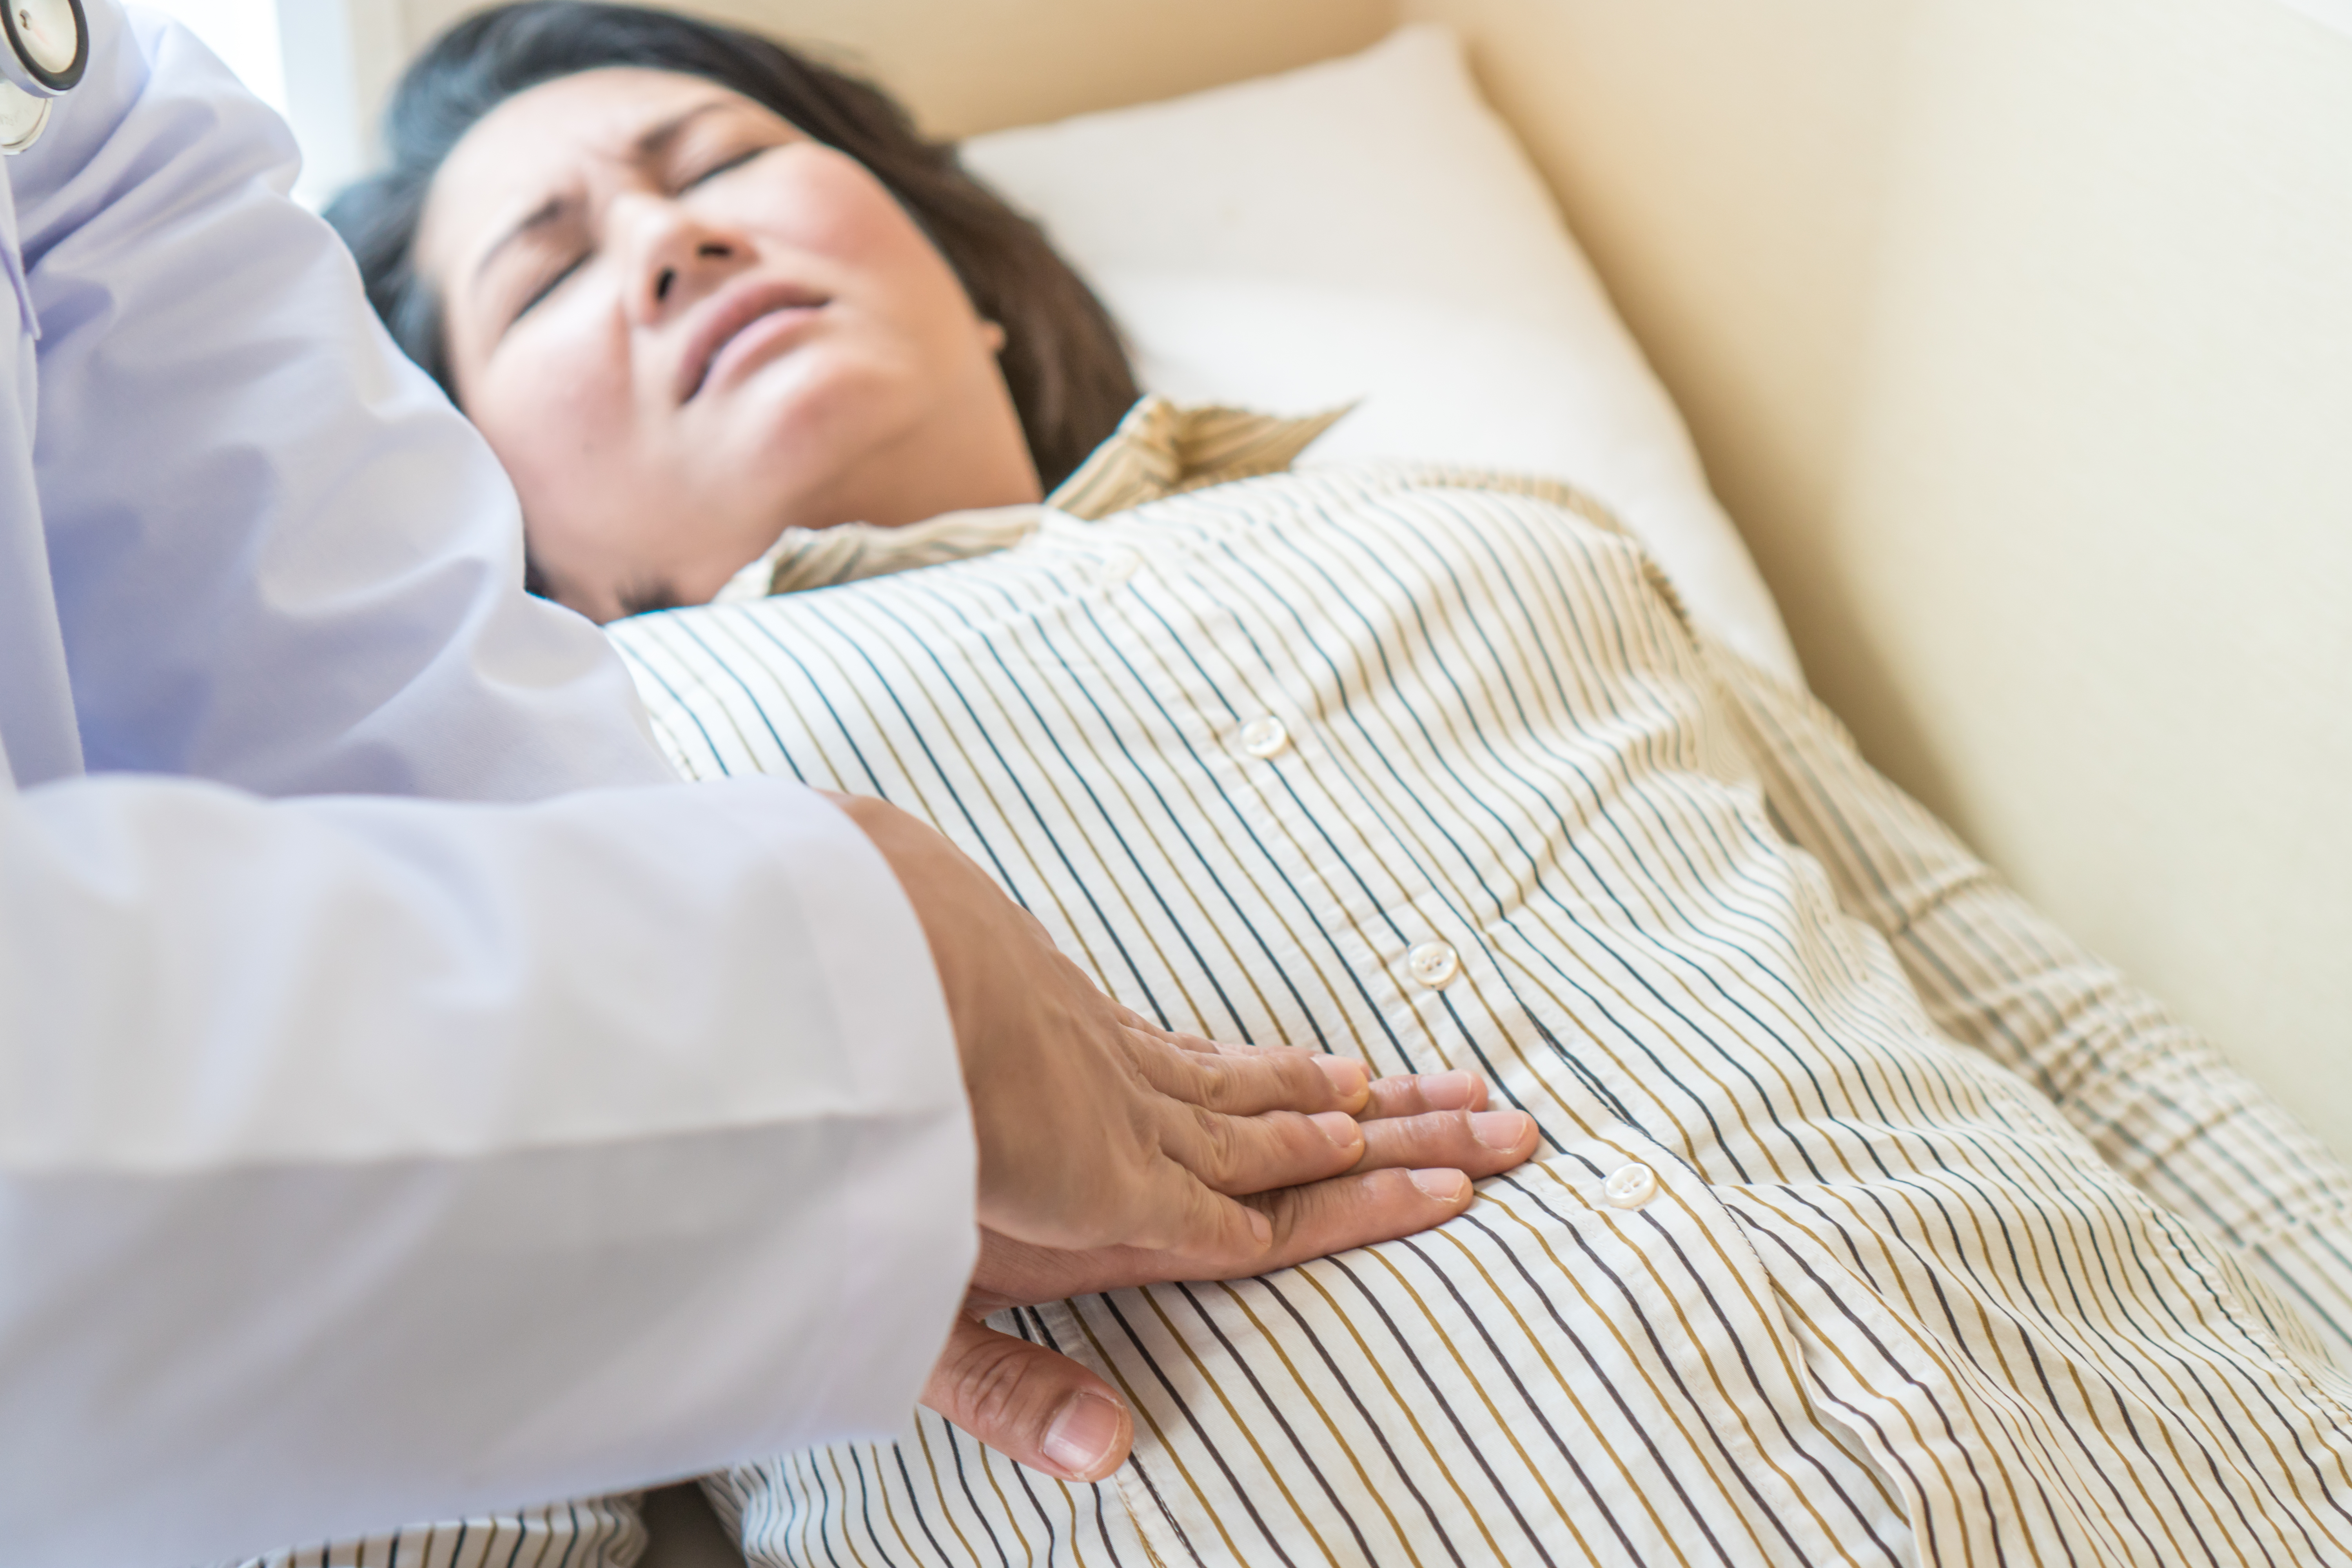 Back & Low Stomach Pain, Constipation in Elderly: Could Be?